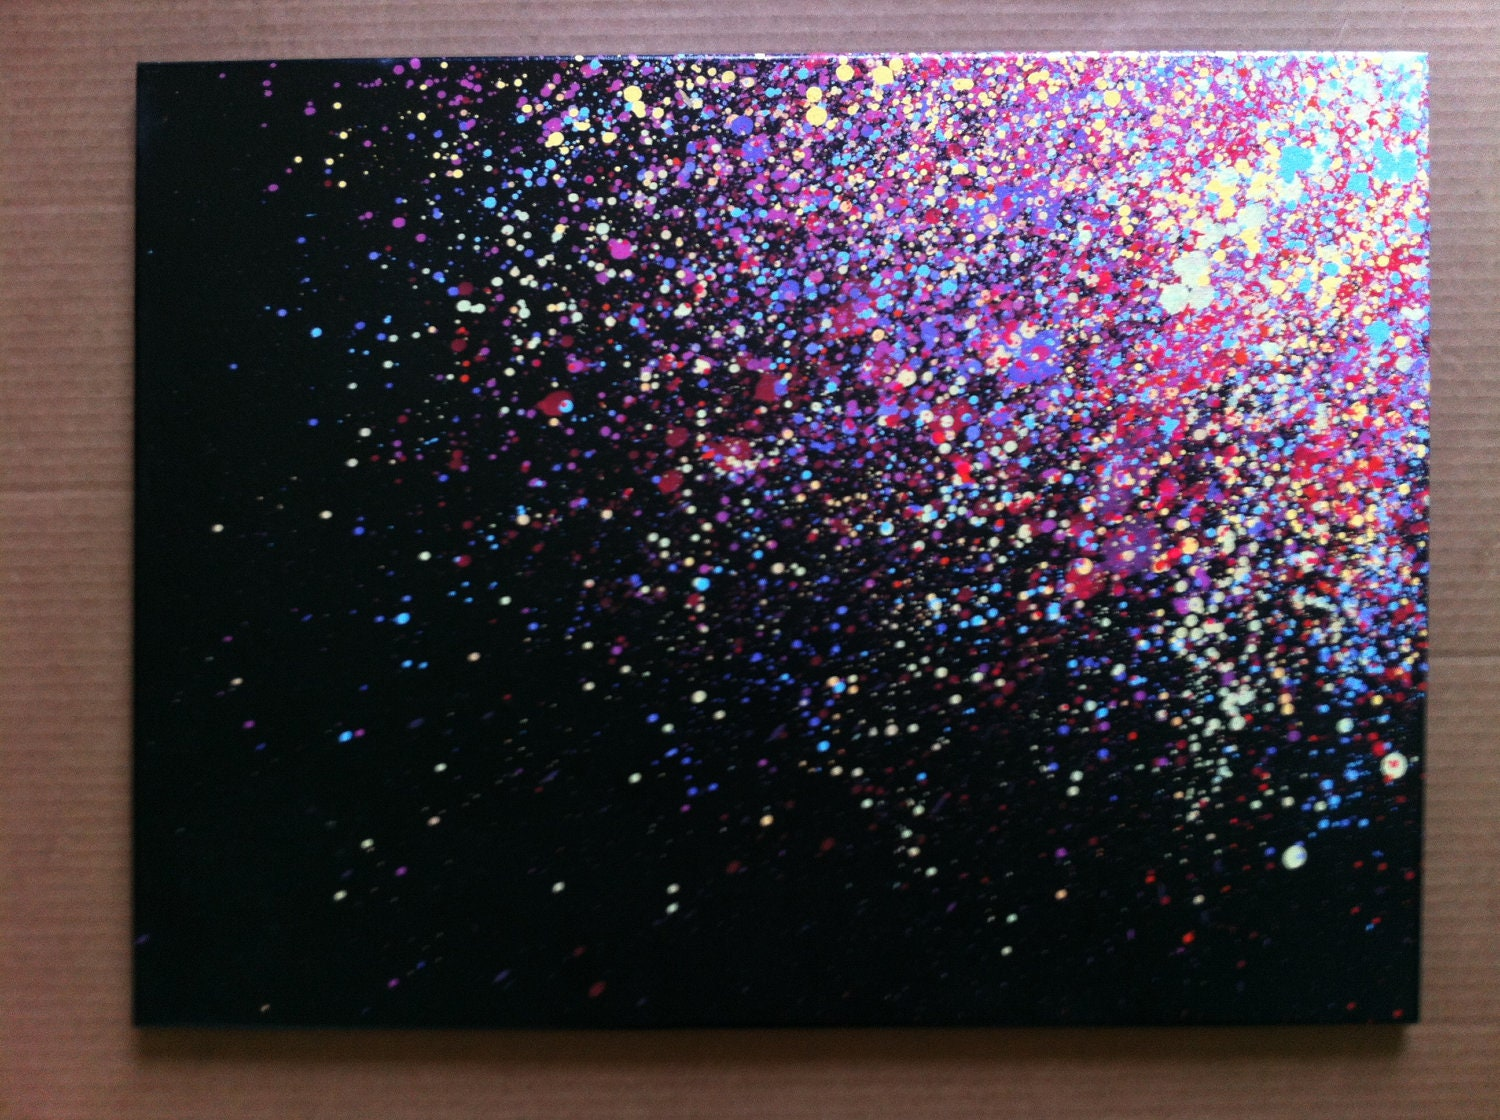 18x24 paint splatter canvas for Back painting ideas easy